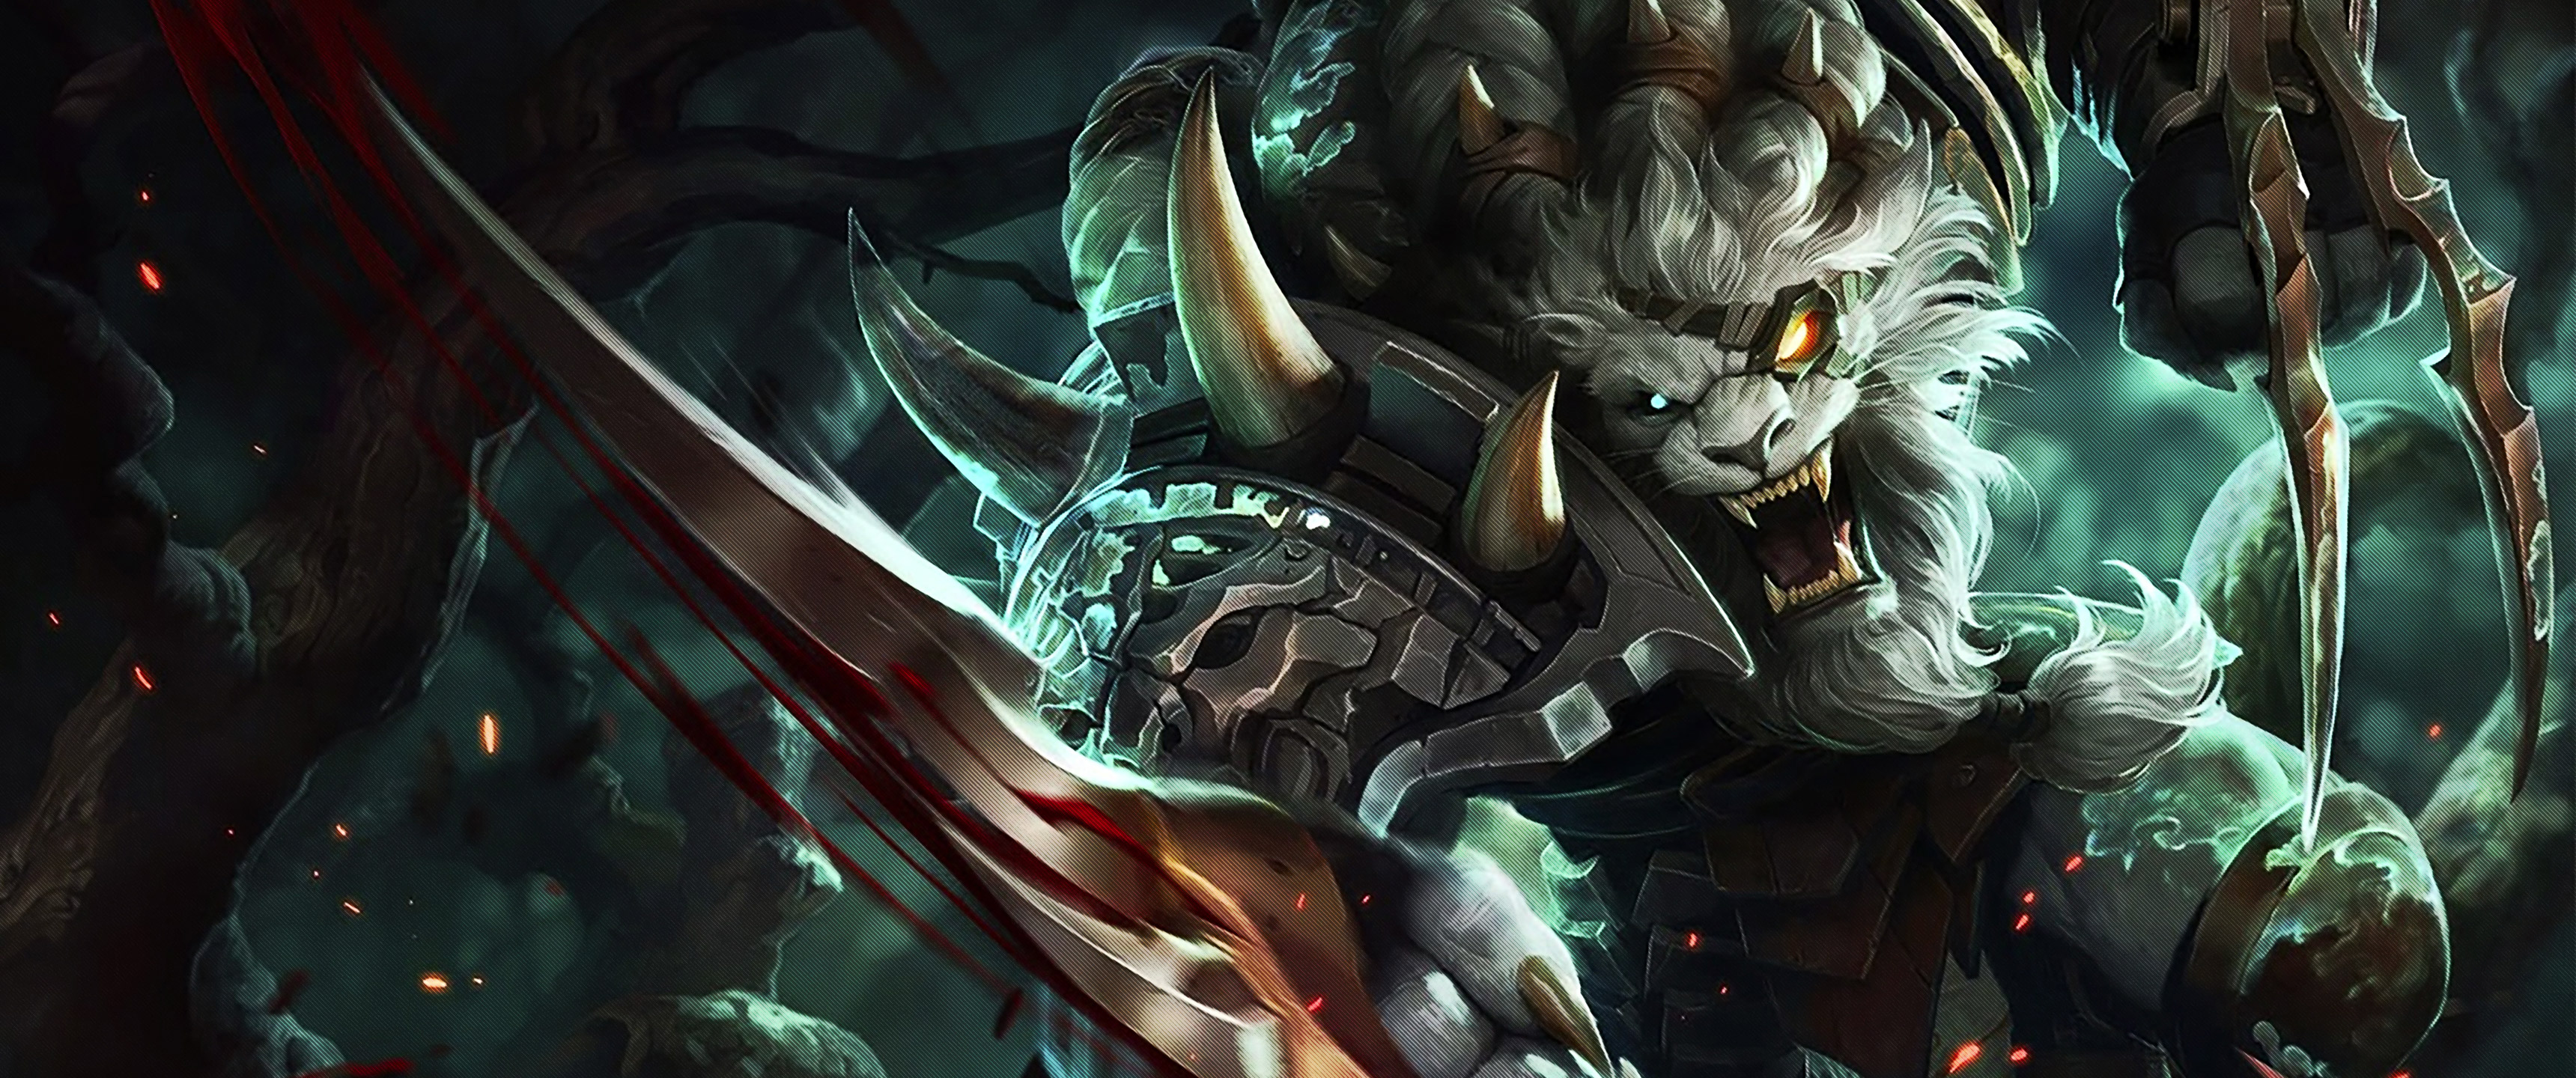 Rengar Full HD Wallpaper And Background Image 3440x1440